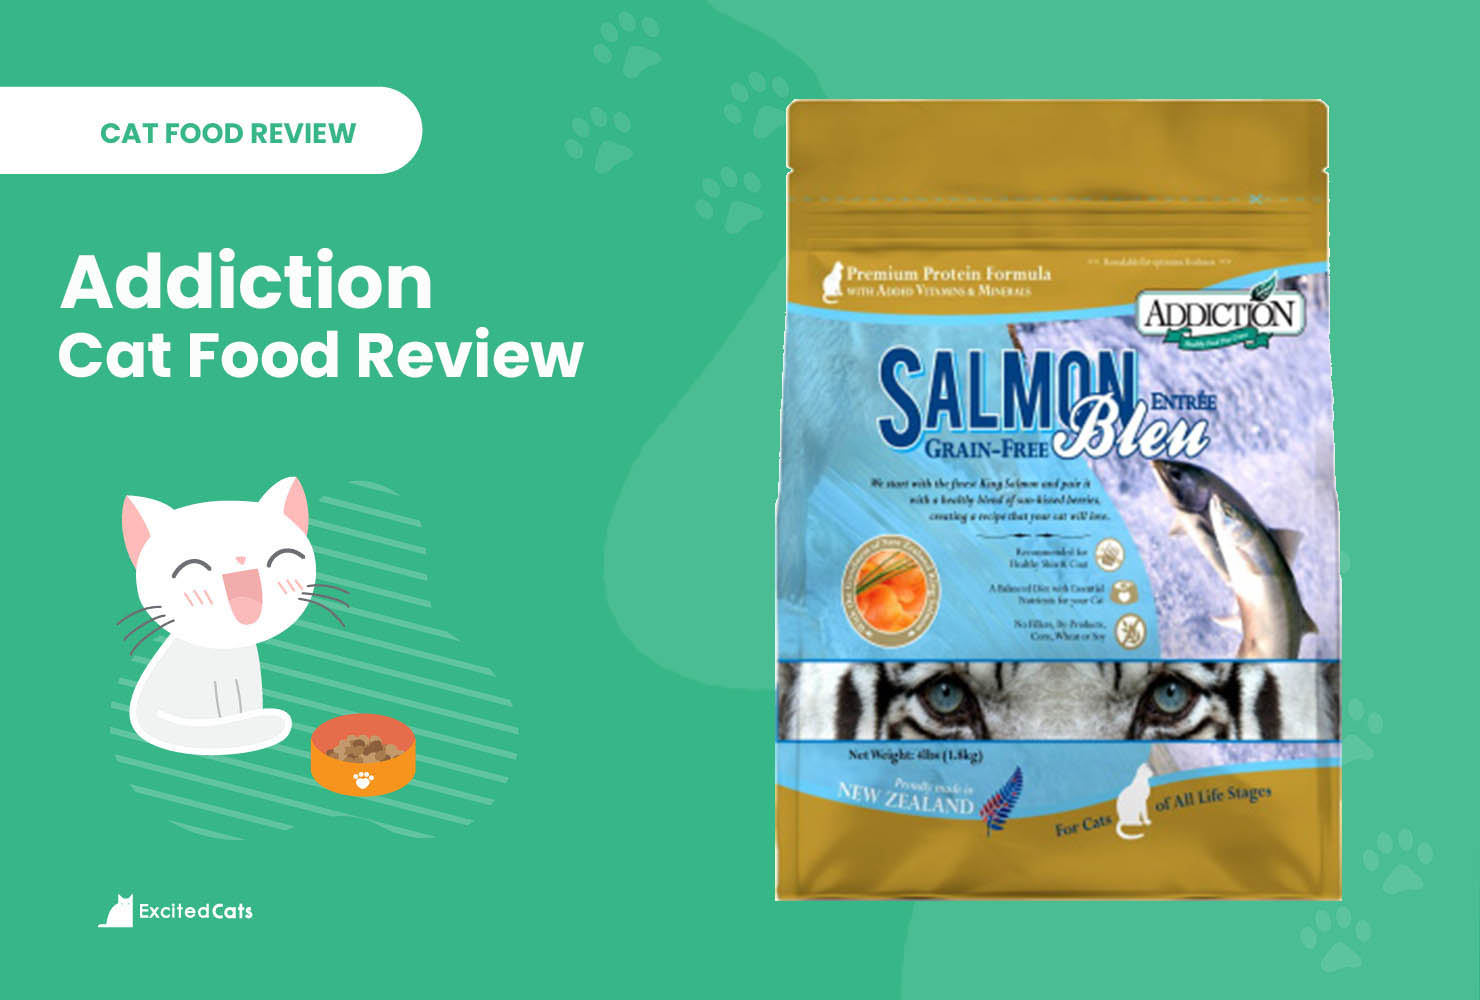 Addiction Cat Food review